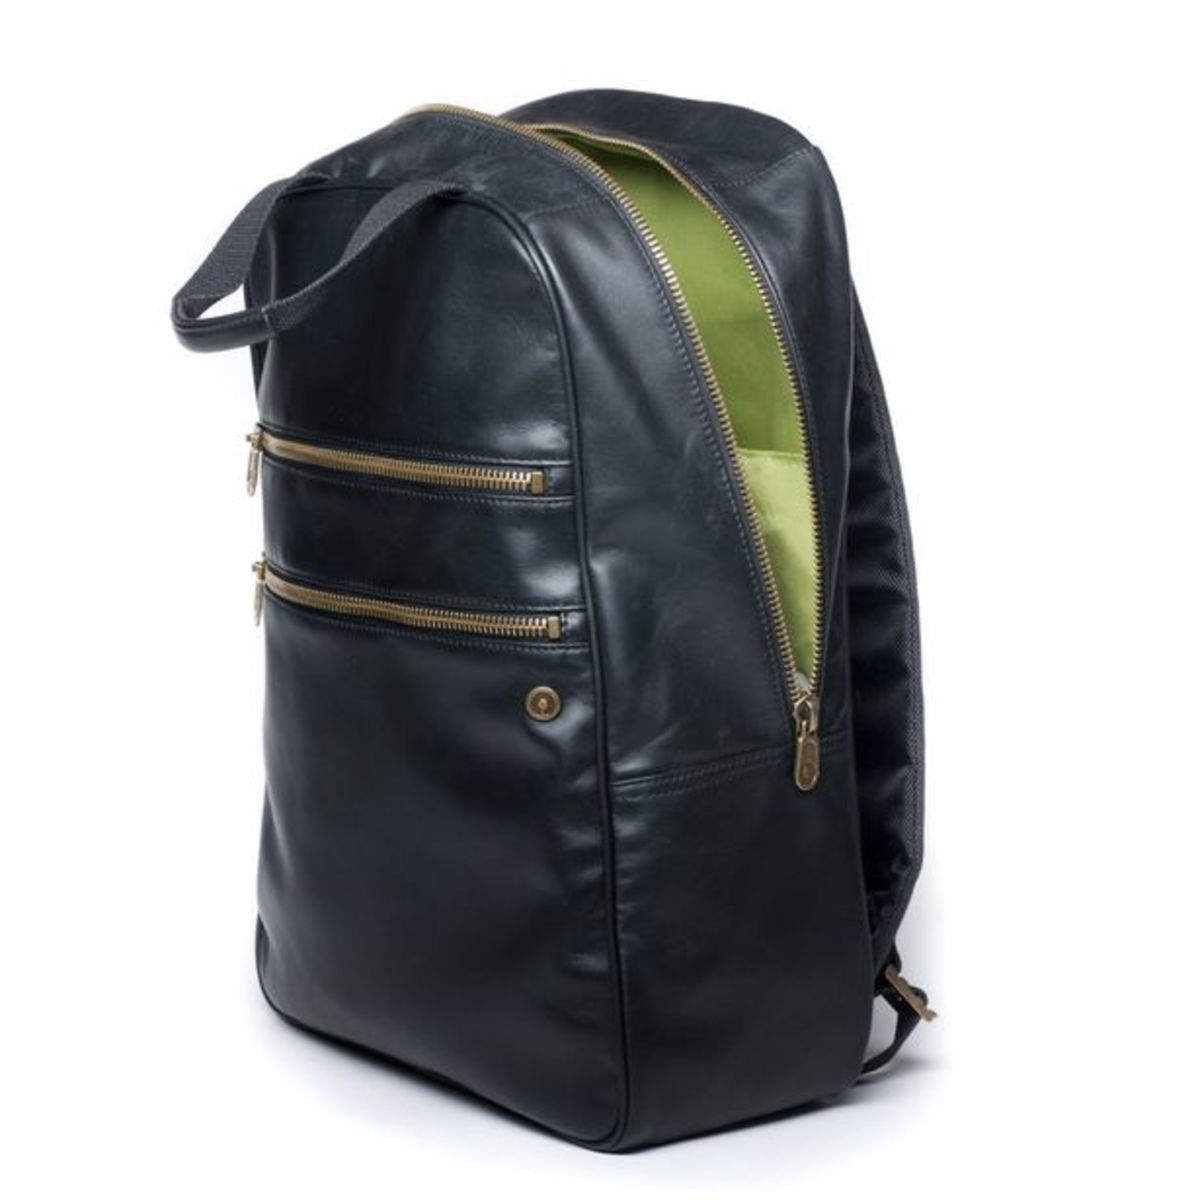 EDM Style: Mojo Backpacks' Bowery And 1113 Styles Are Perfect For Movement In EDM Culture